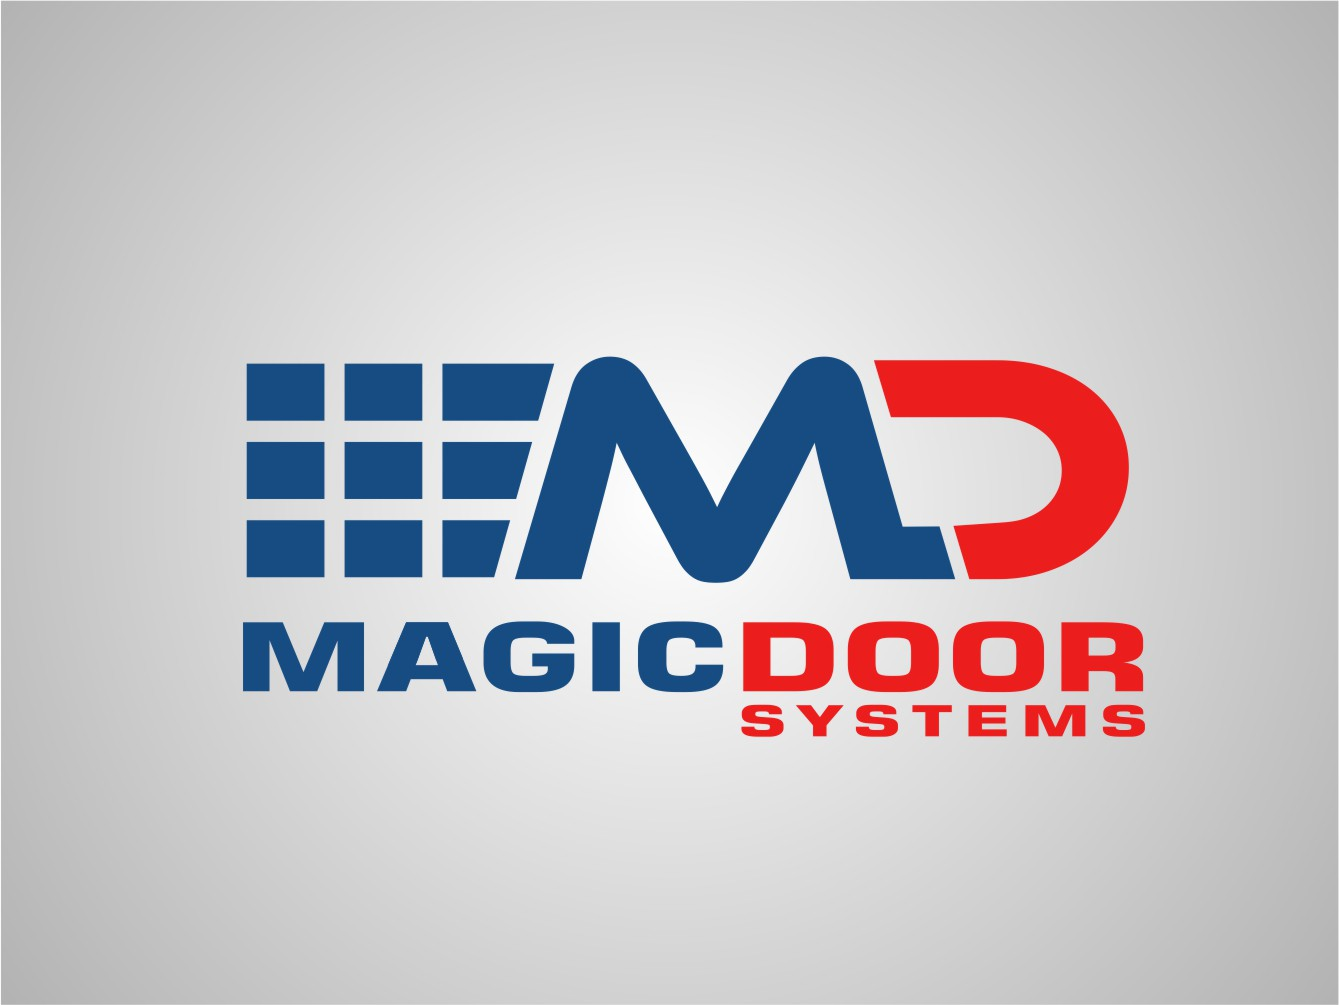 New logo wanted for Magic Door Systems